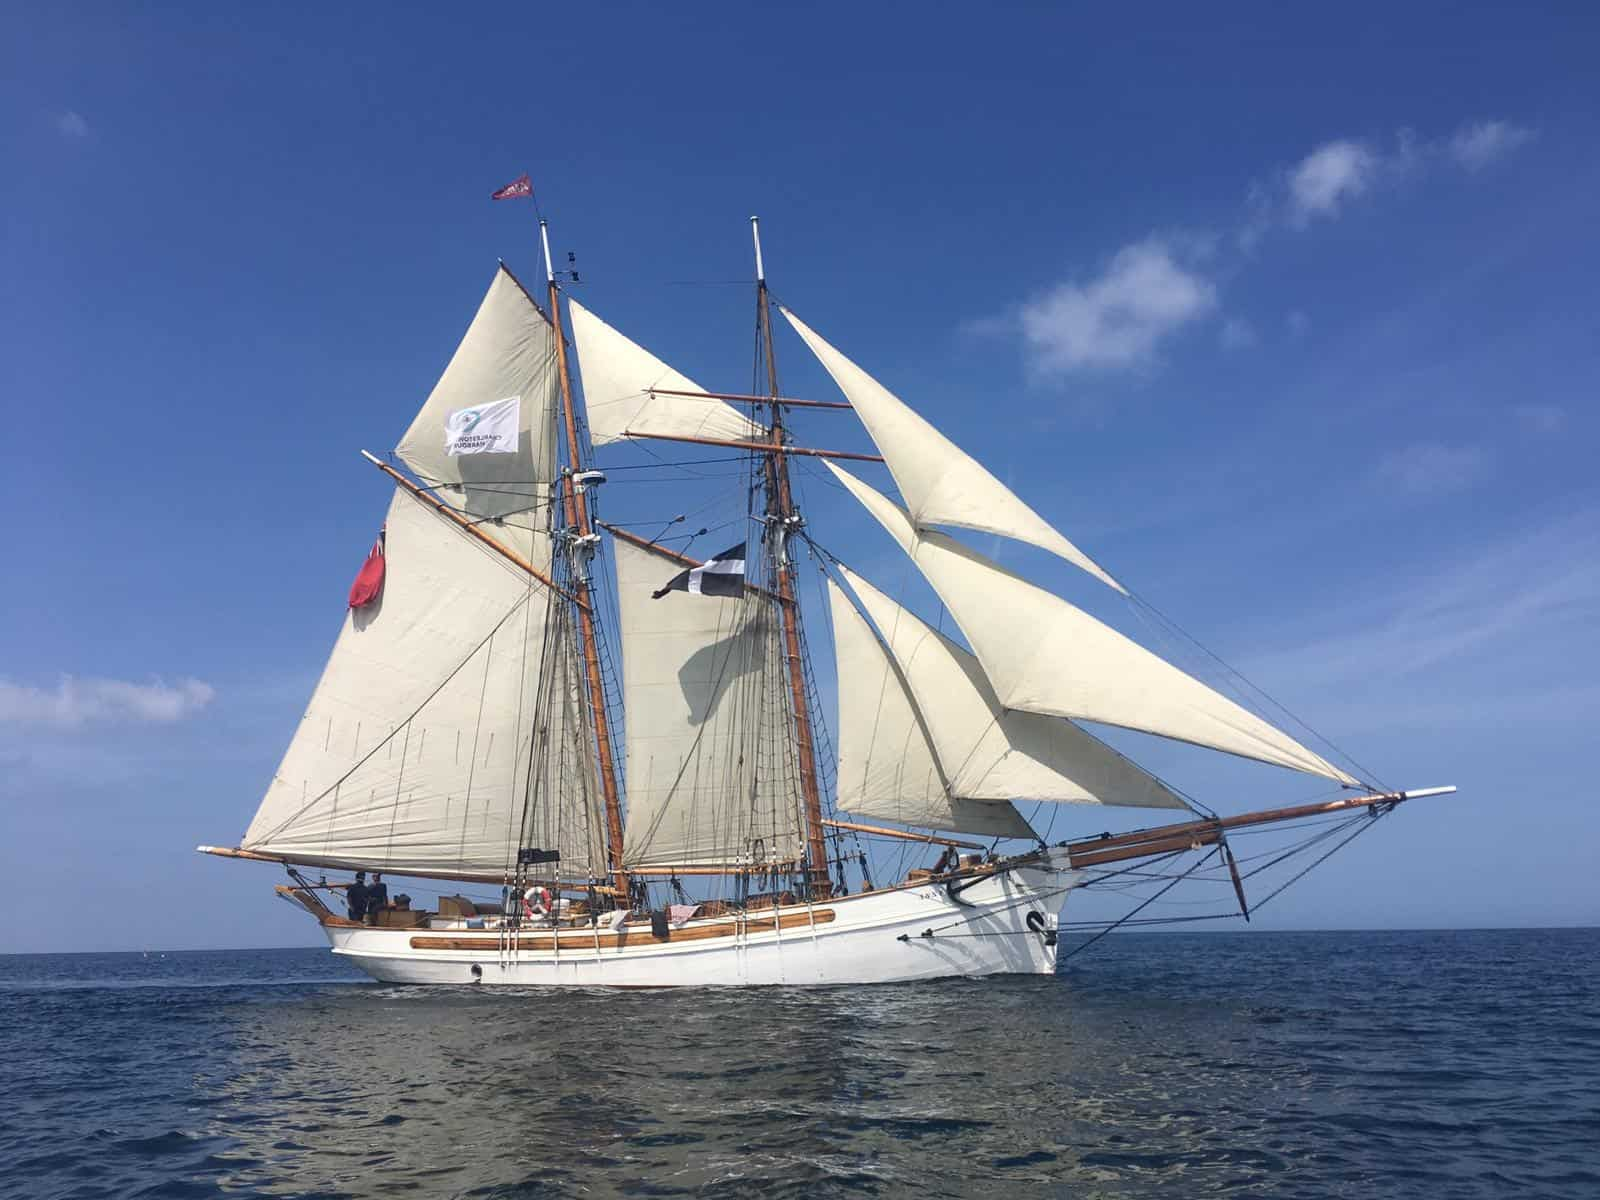 Anny of Charlestown - come sail her in Cornwall or Devon - short breaks